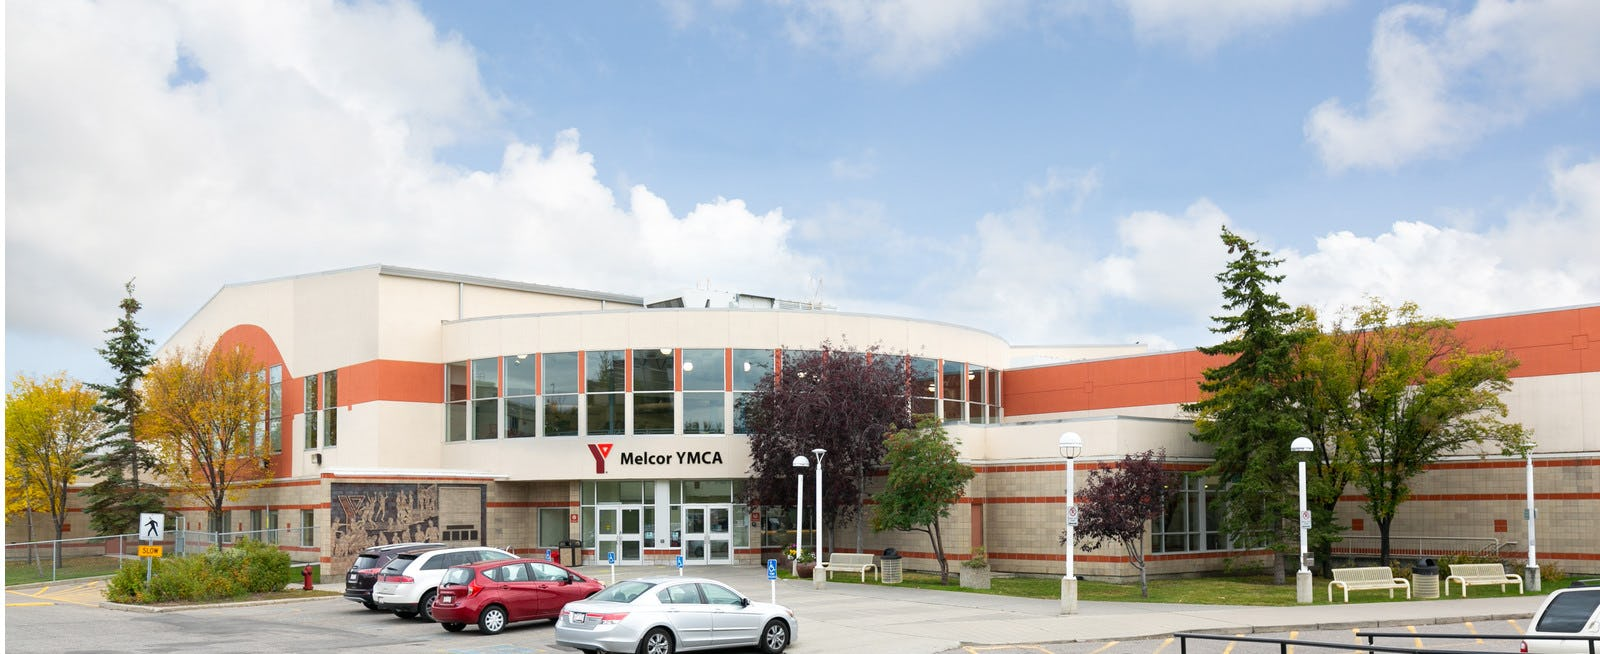 Exterior of Melcor YMCA at Crowfoot